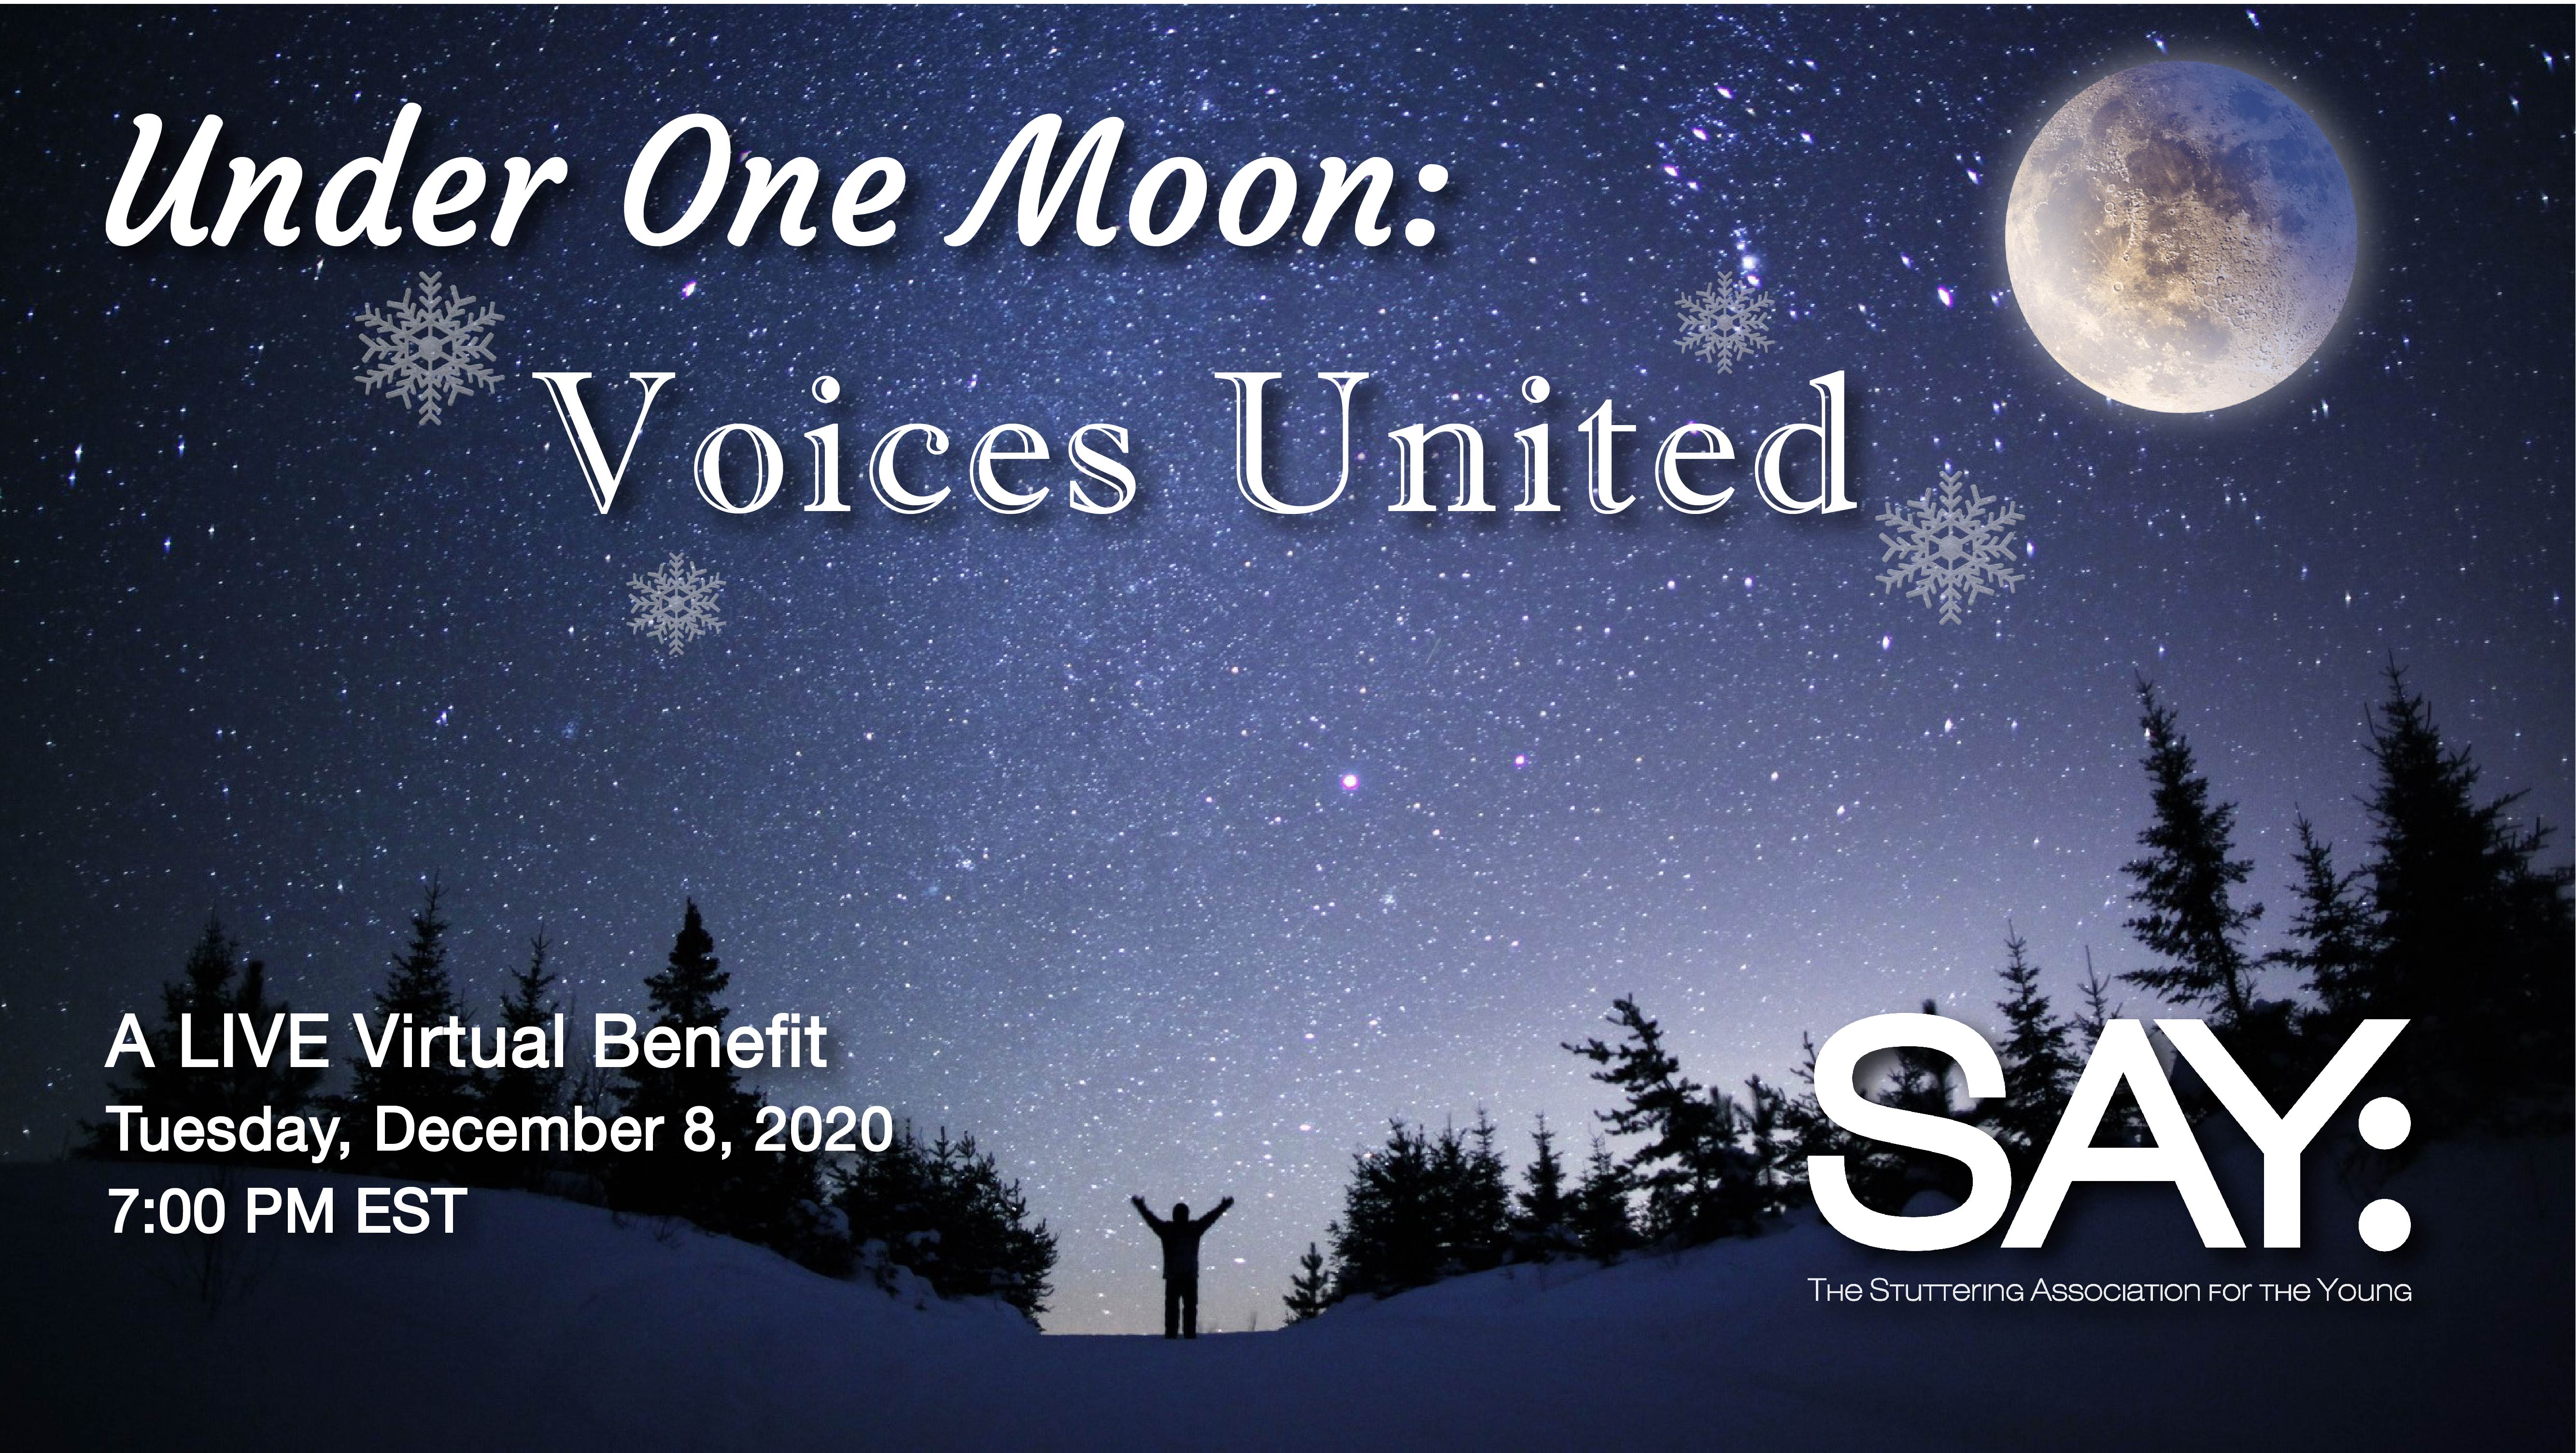 Under One Moon: VOICES UNITED Live Virtual Benefit